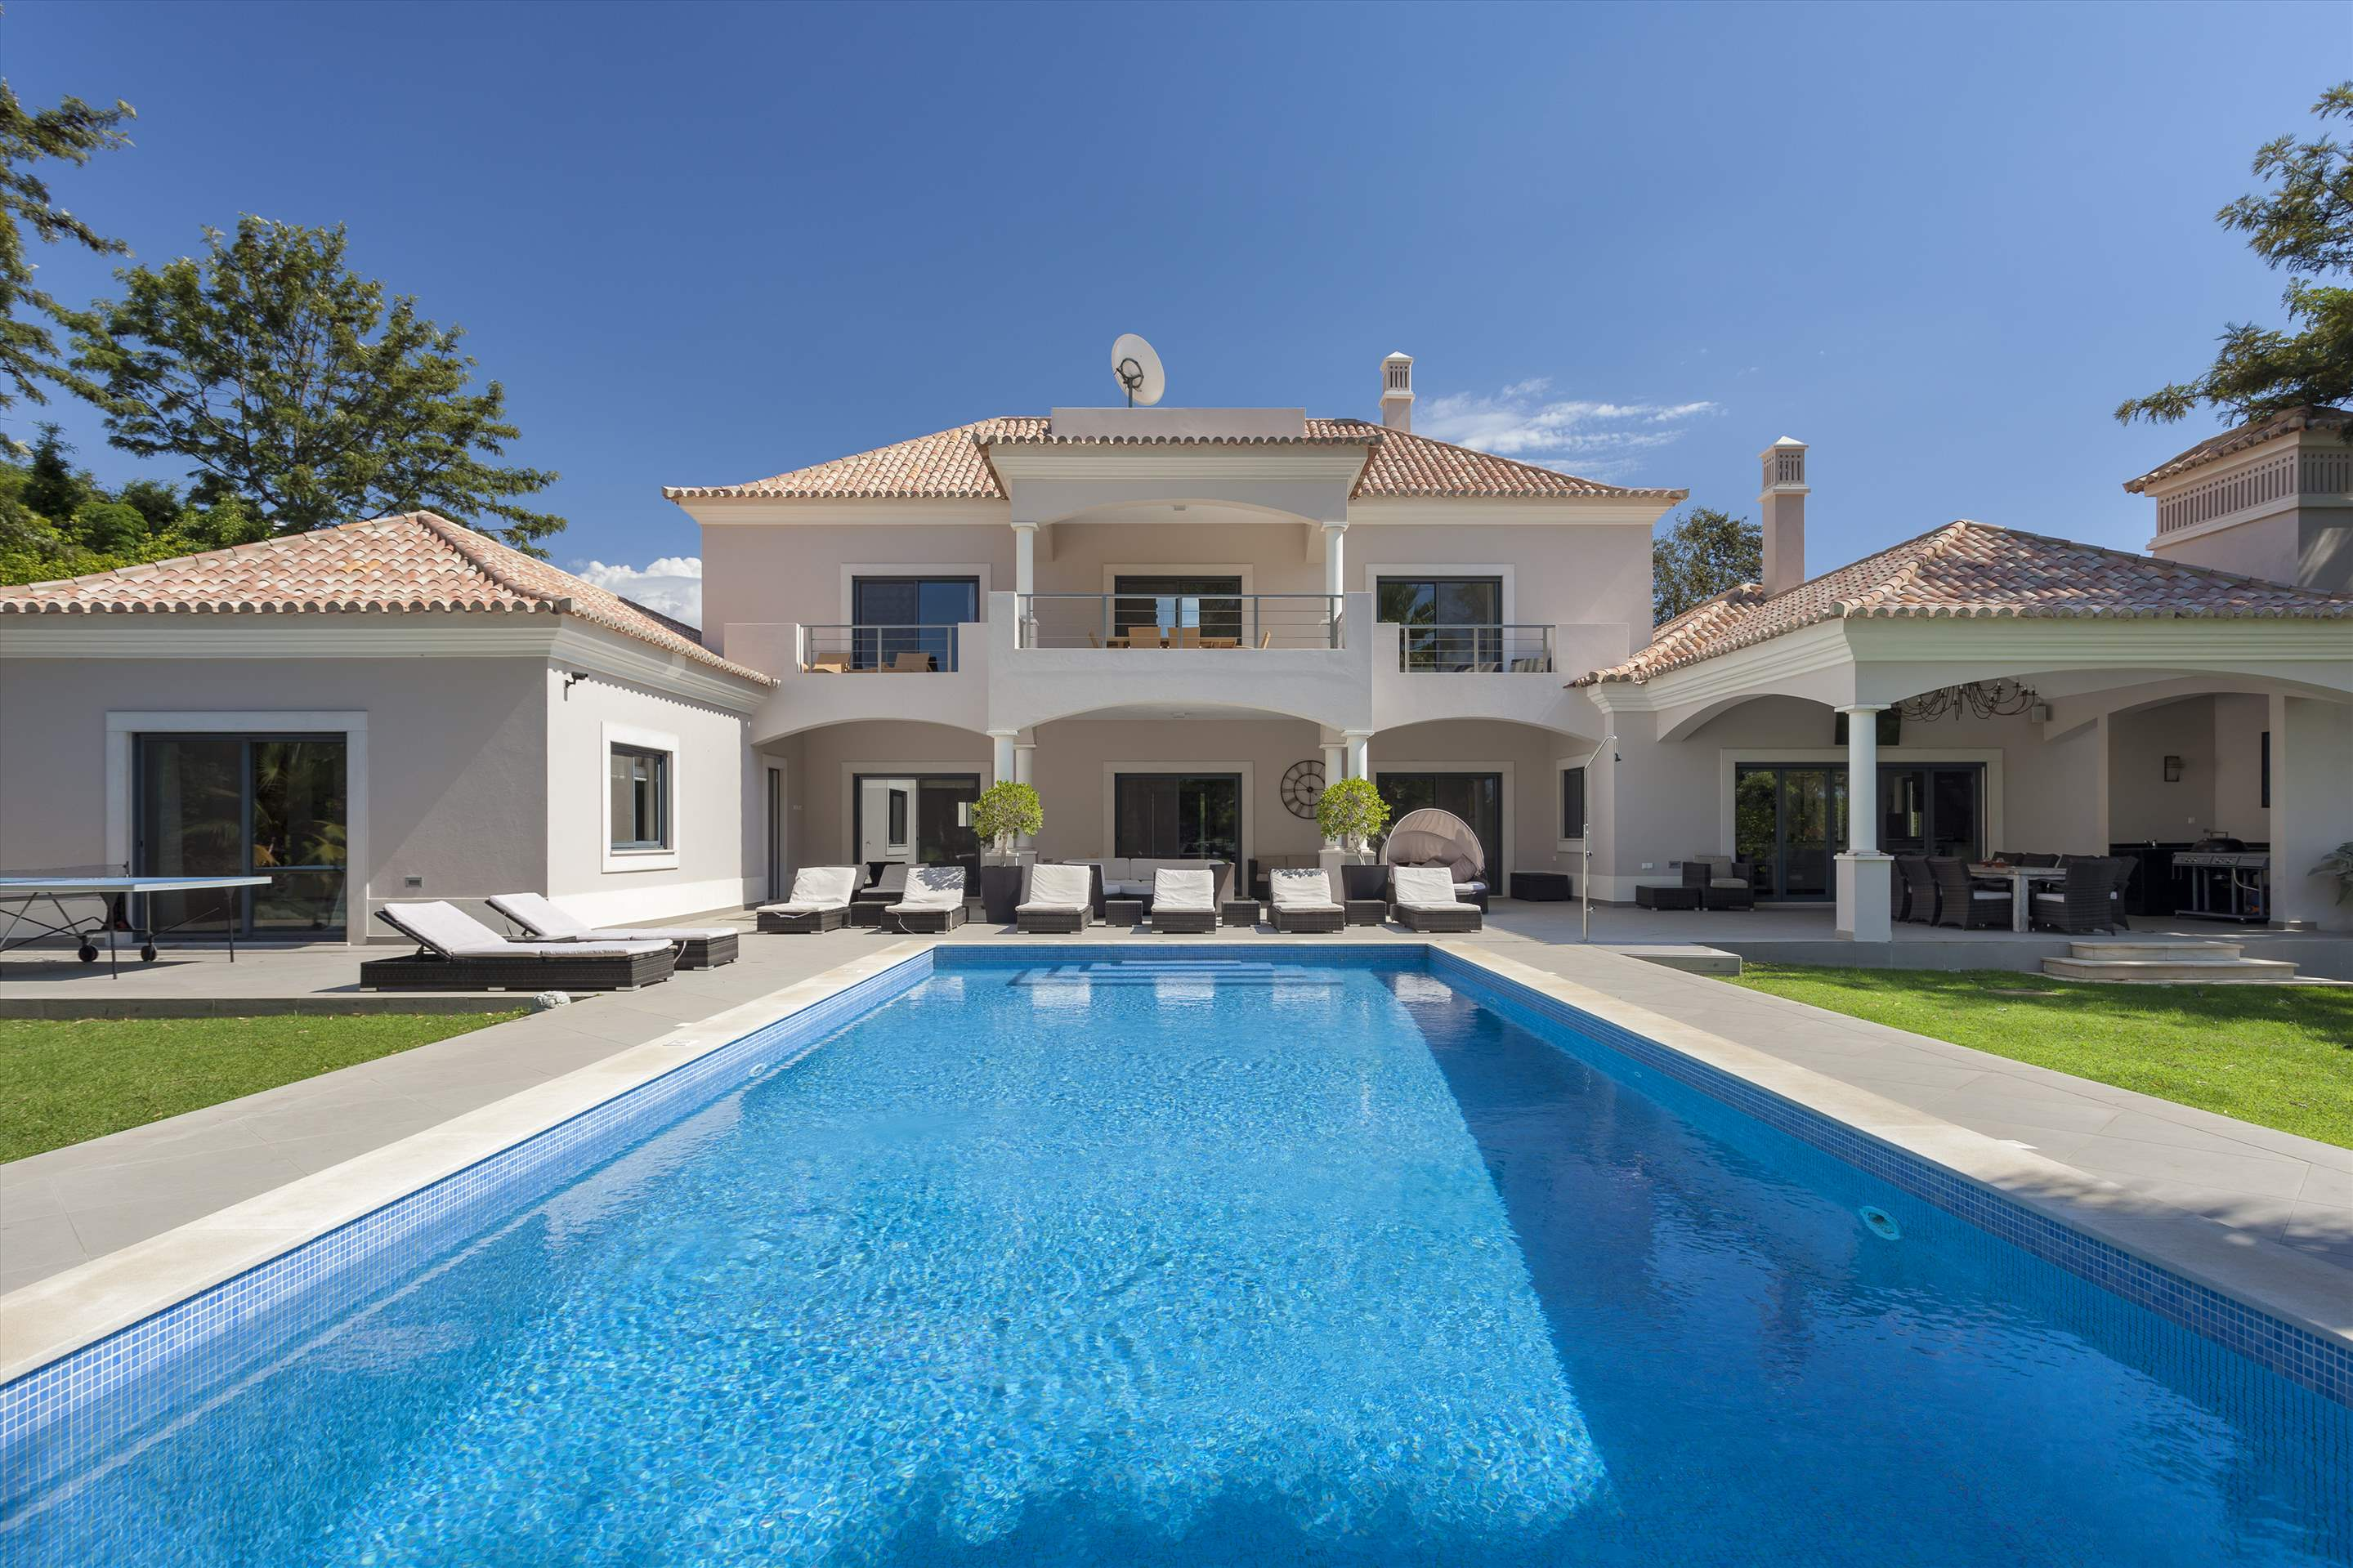 Villa Mar Azul, 5 bedroom villa in Vale do Lobo, Algarve Photo #1